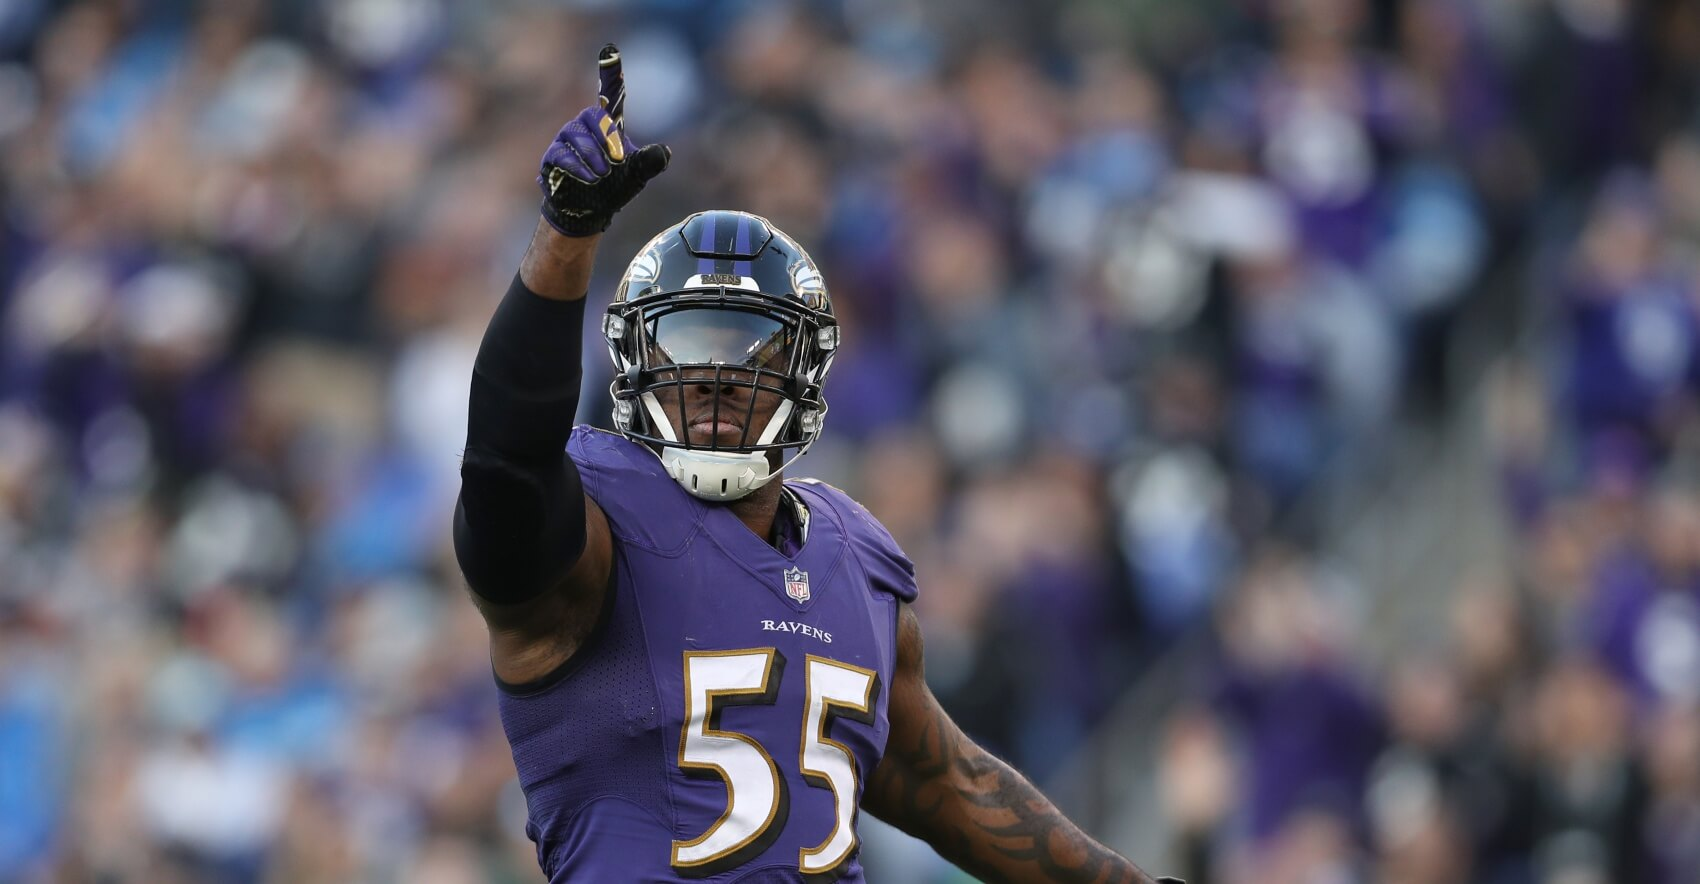 Fantasy Football: Defenses With Favorable Opening Schedules